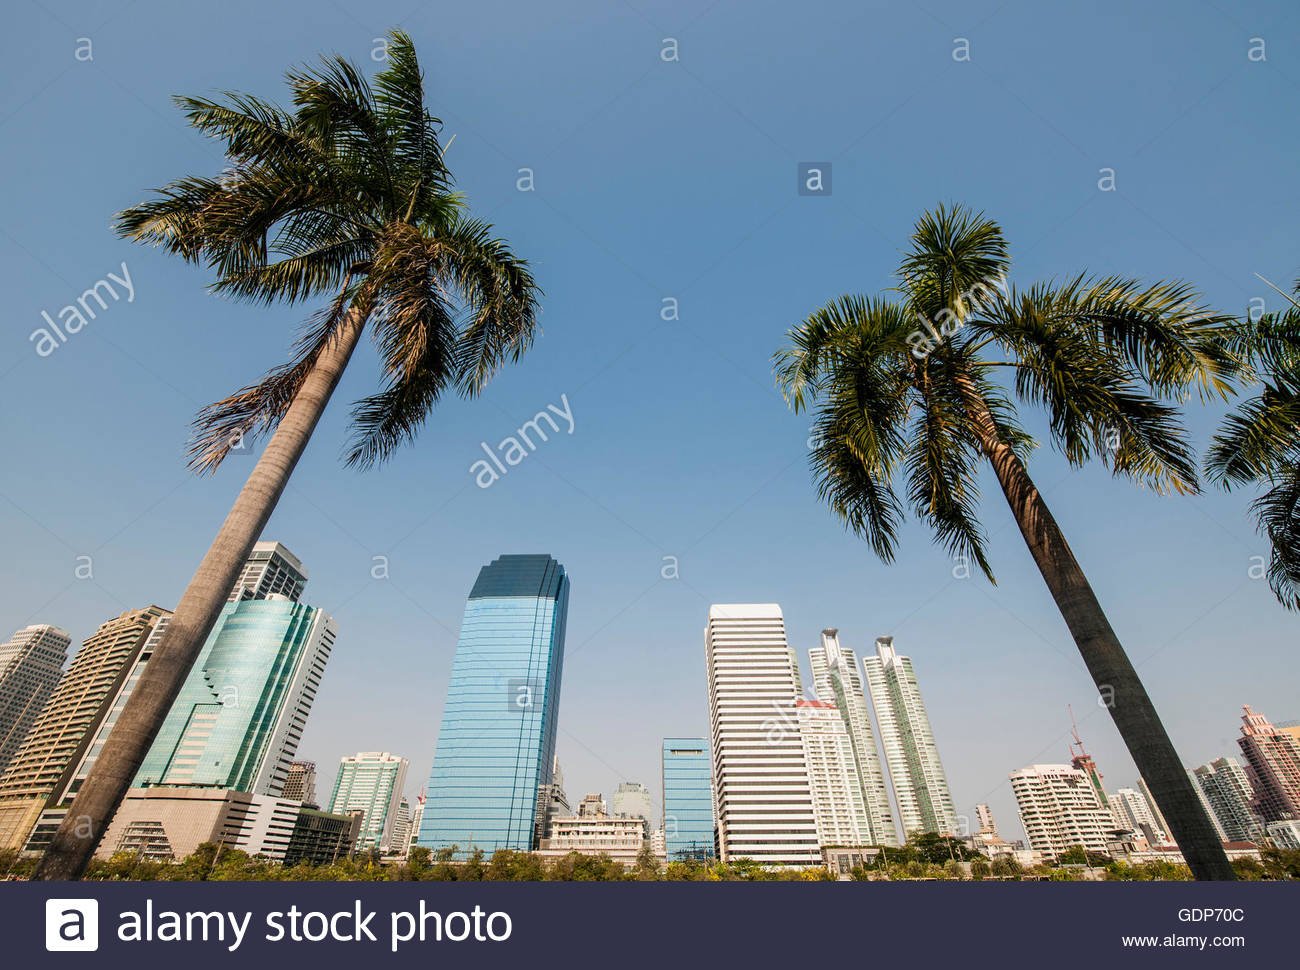 Low angle view of palm trees and sky scrapers, Benjakiti Park, Bangkok, Thailand - Stock Image